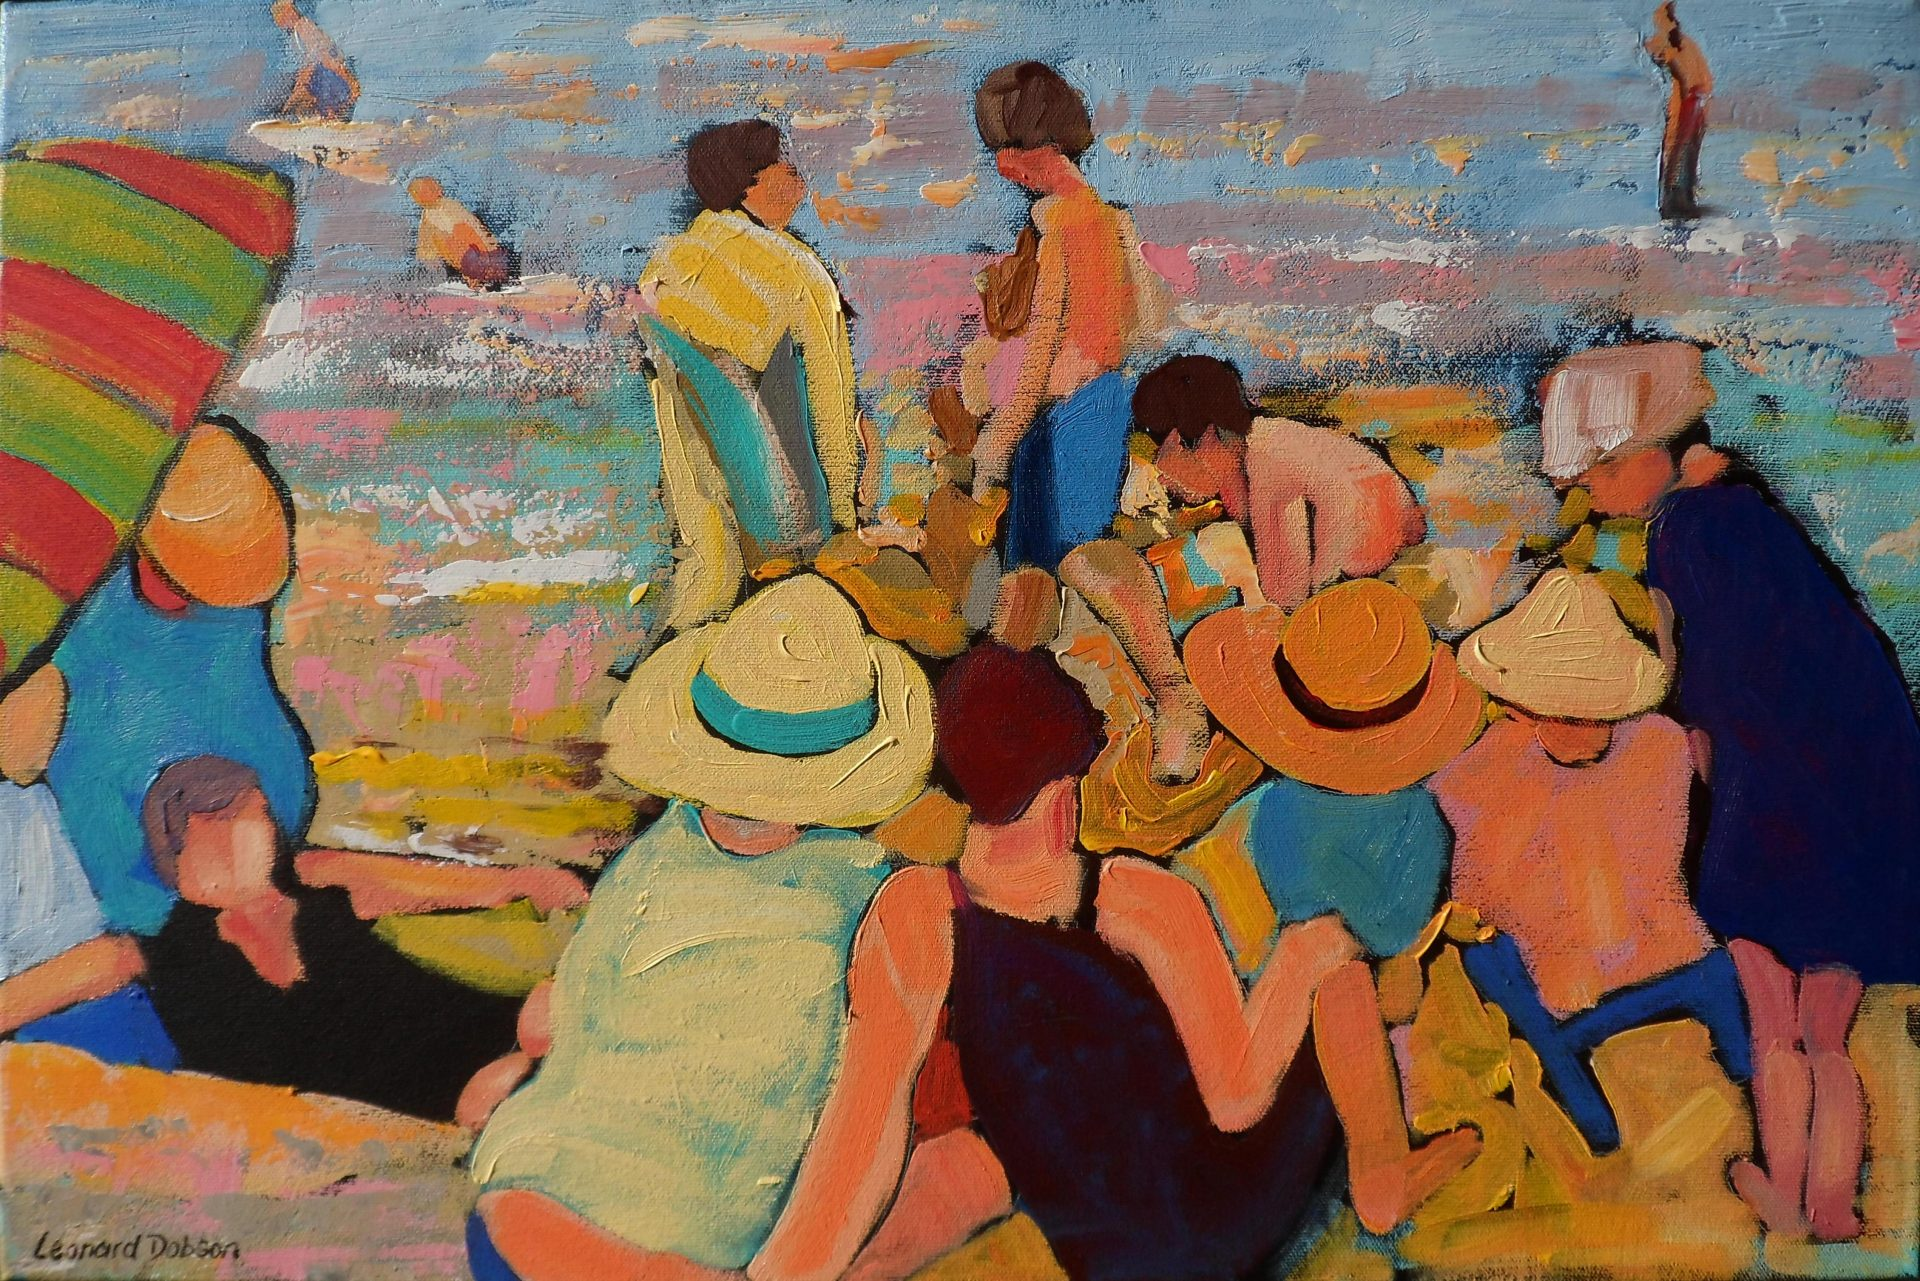 Leonard Dobson A Beautiful Summer's Day painting for sale